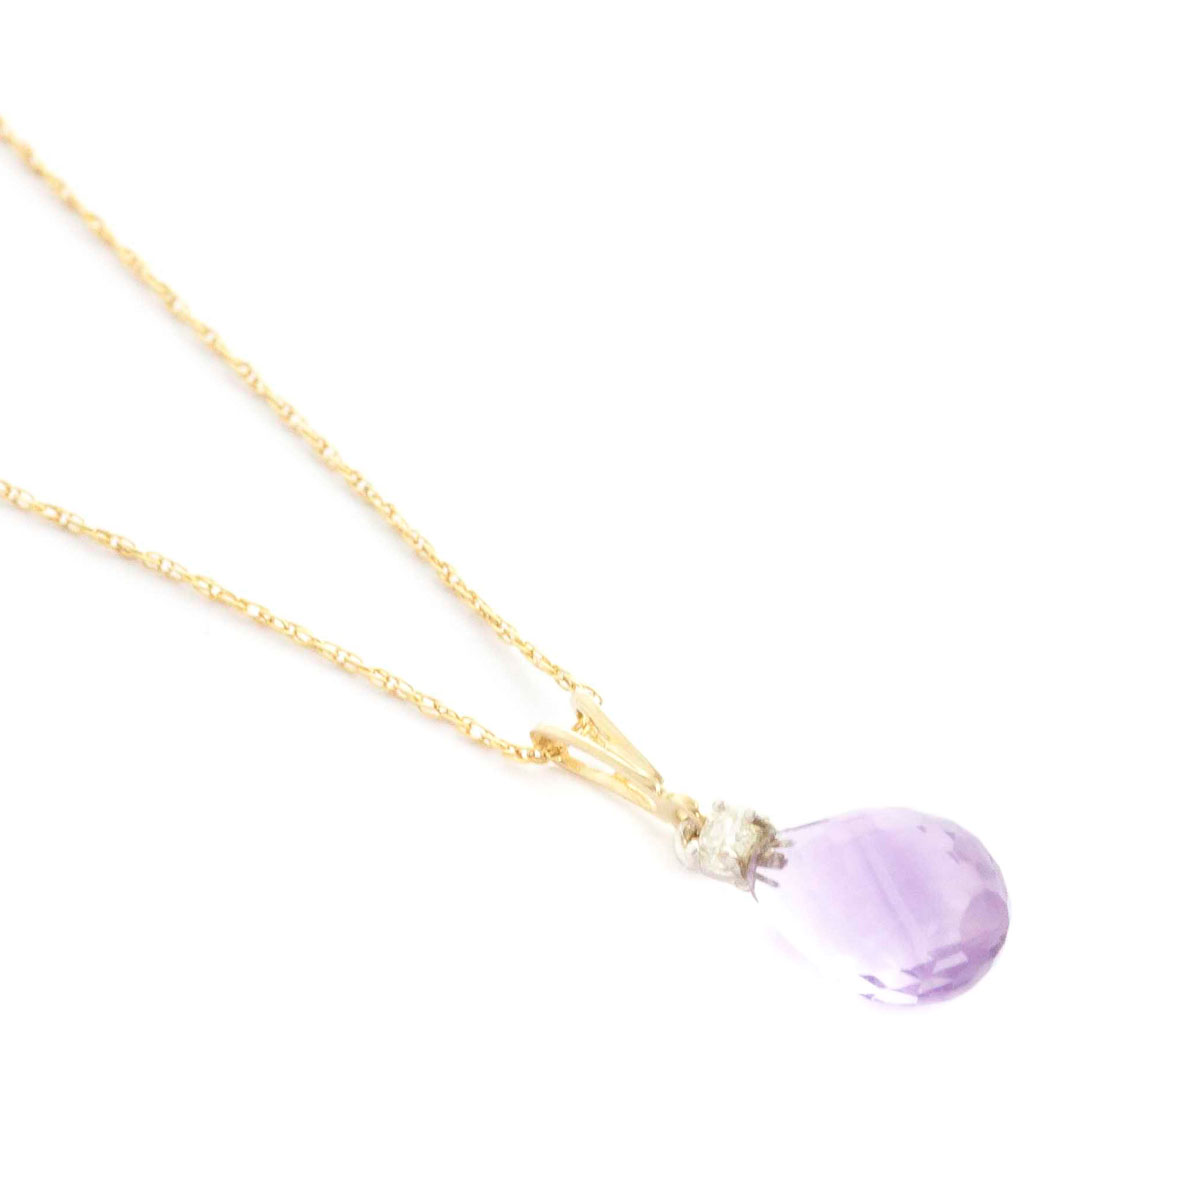 Amethyst & Diamond Beret Pendant Necklace in 9ct Gold